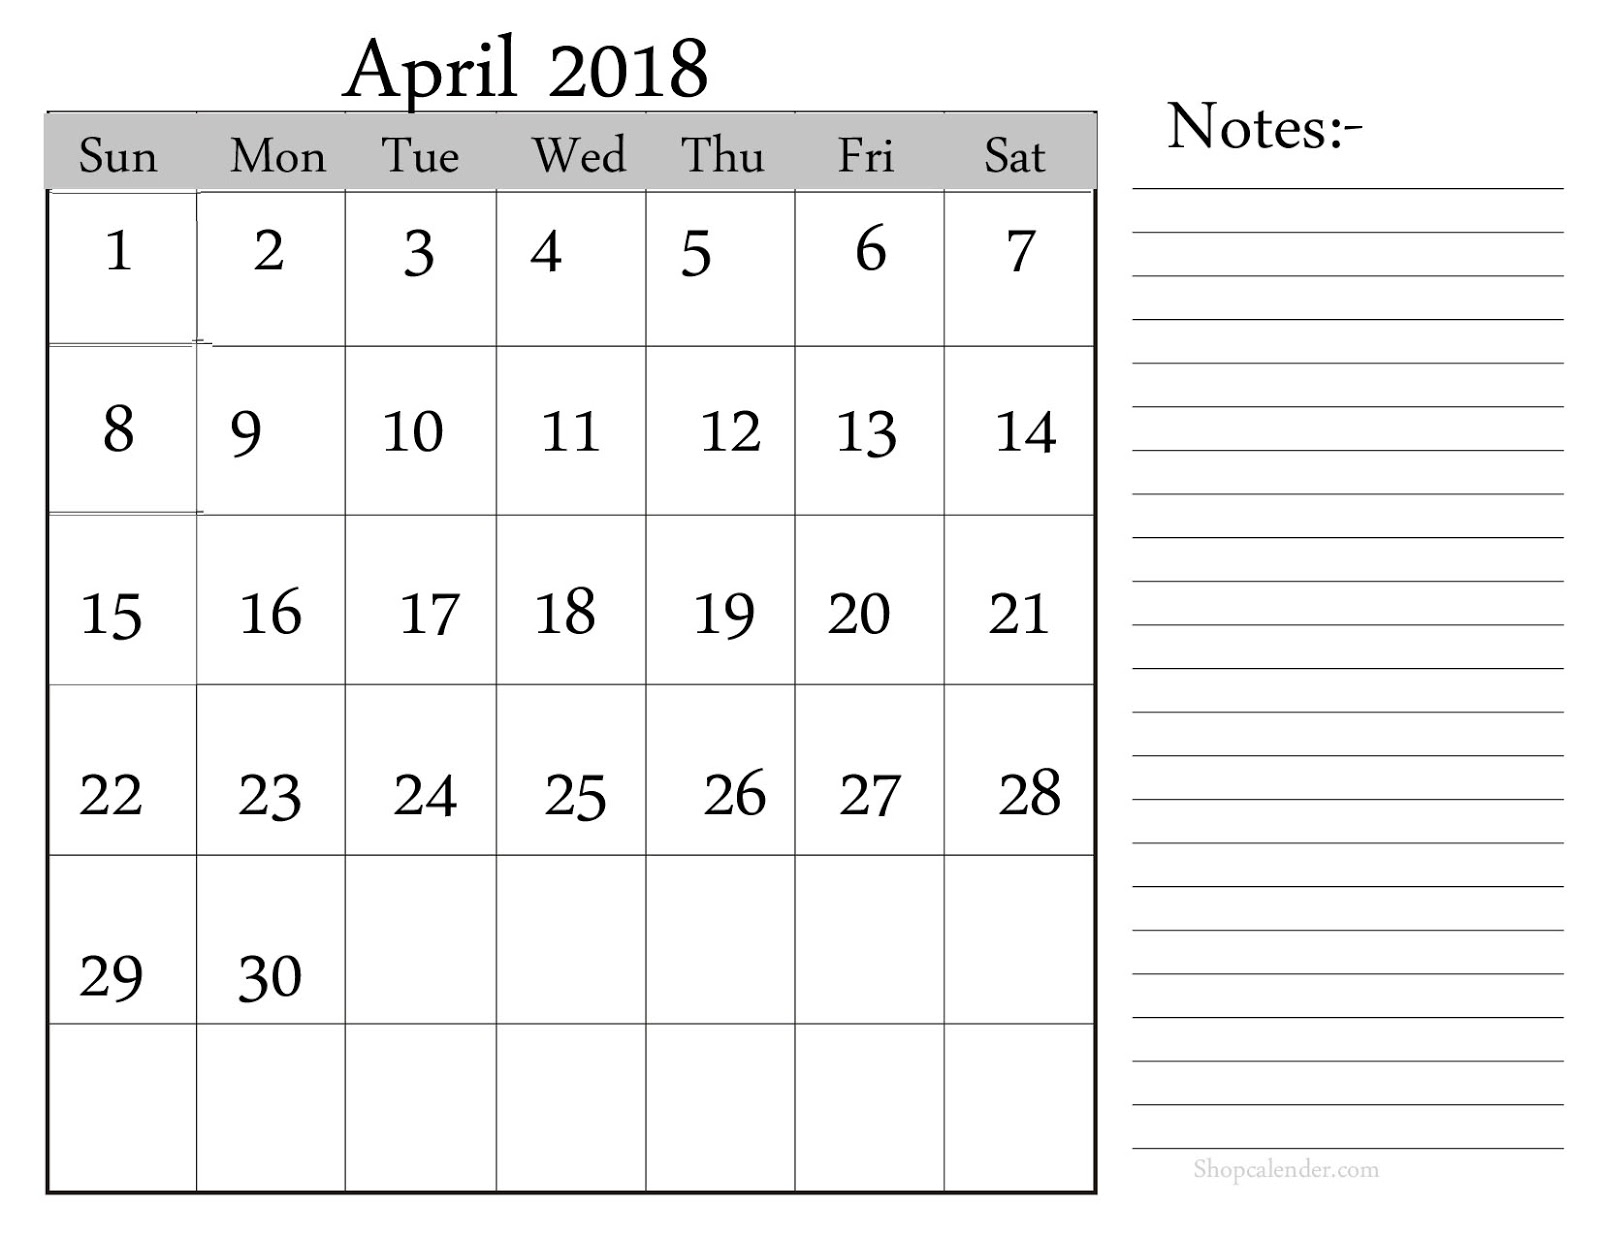 April Calendar With Notes : April printable calendar blank template